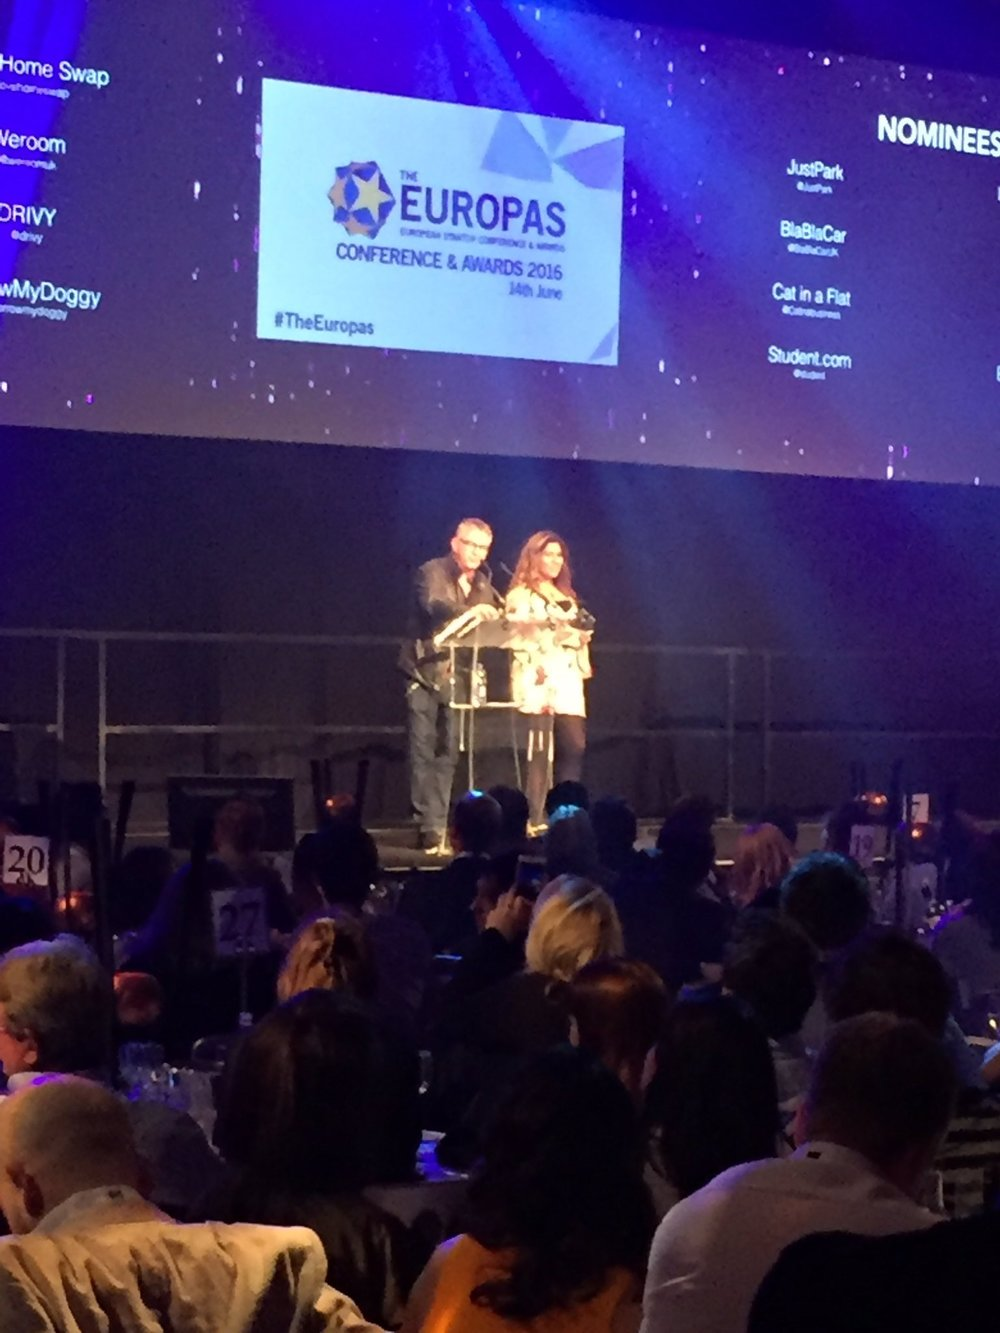 Europas 2016, London